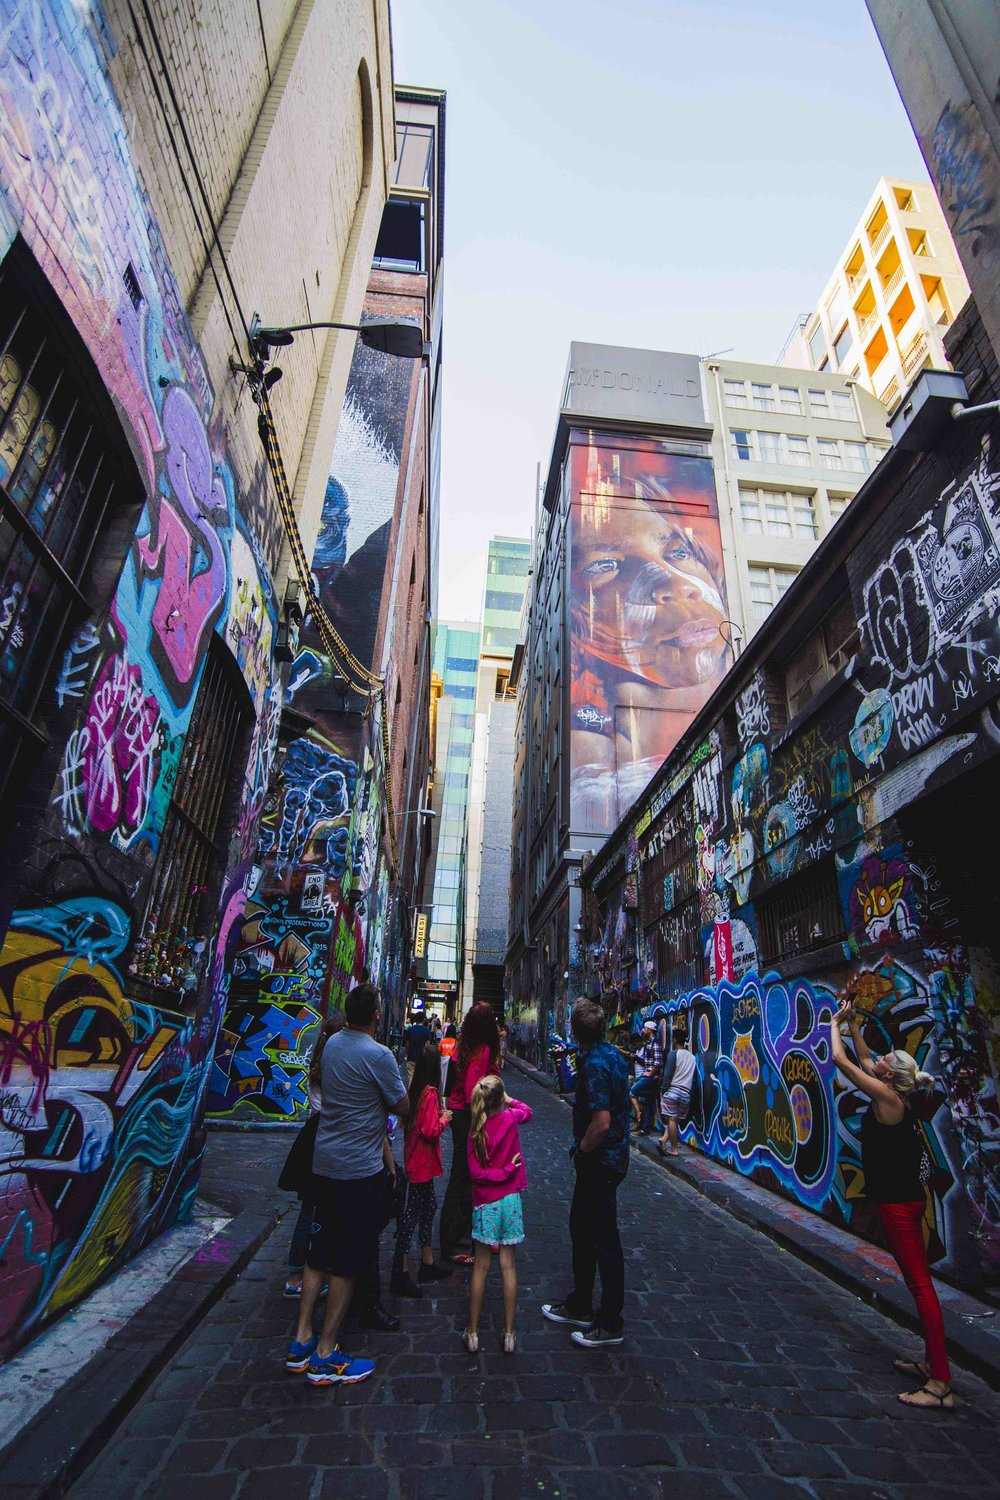 Melbourne's Hosier Lane full of street art. Photo: Marine Raynard